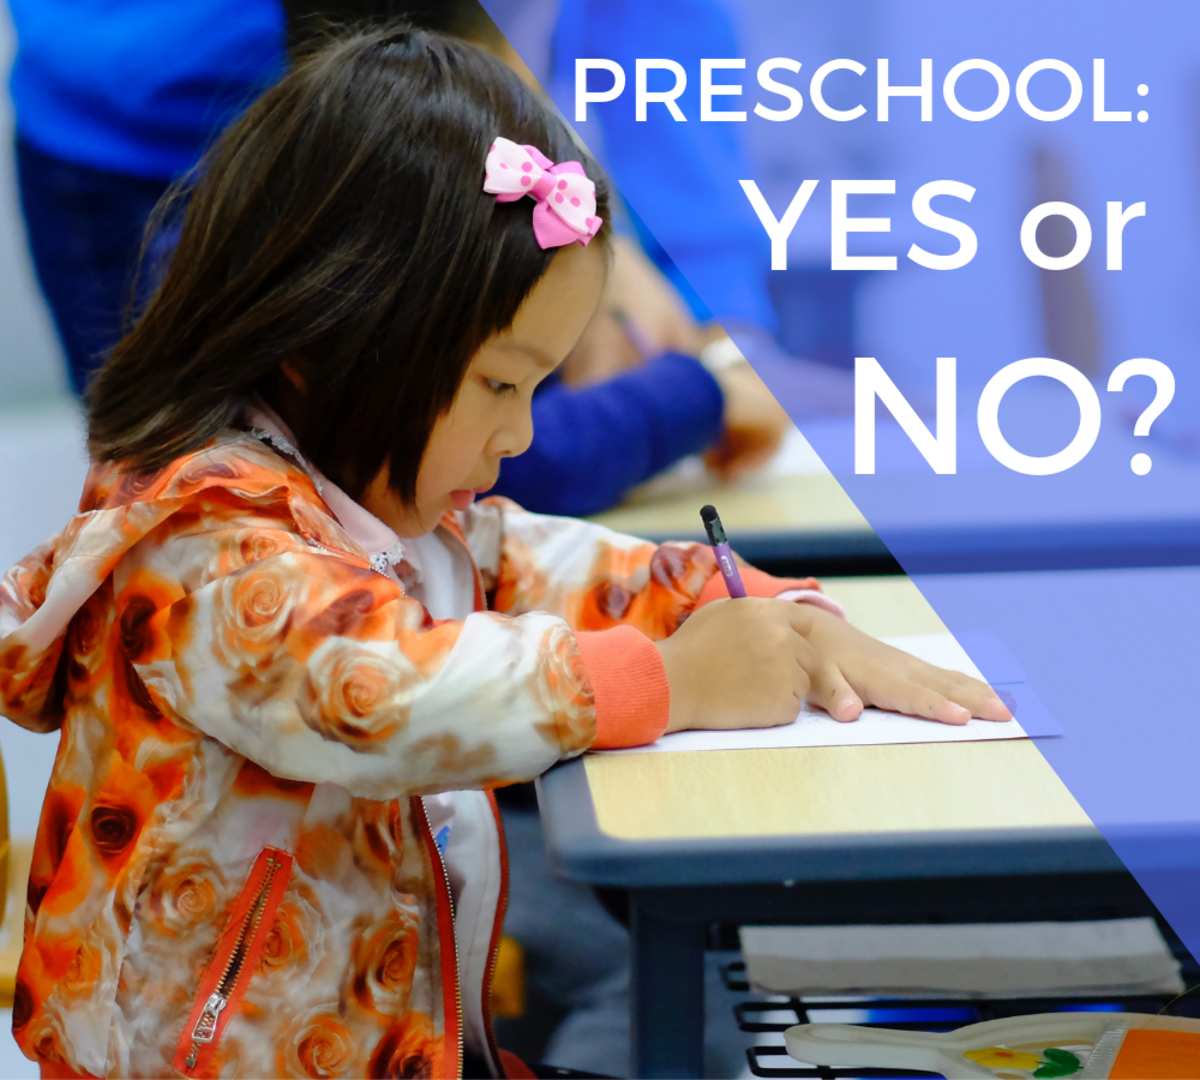 A Teacher Explains Why You Shouldn't Send Your Child to Preschool